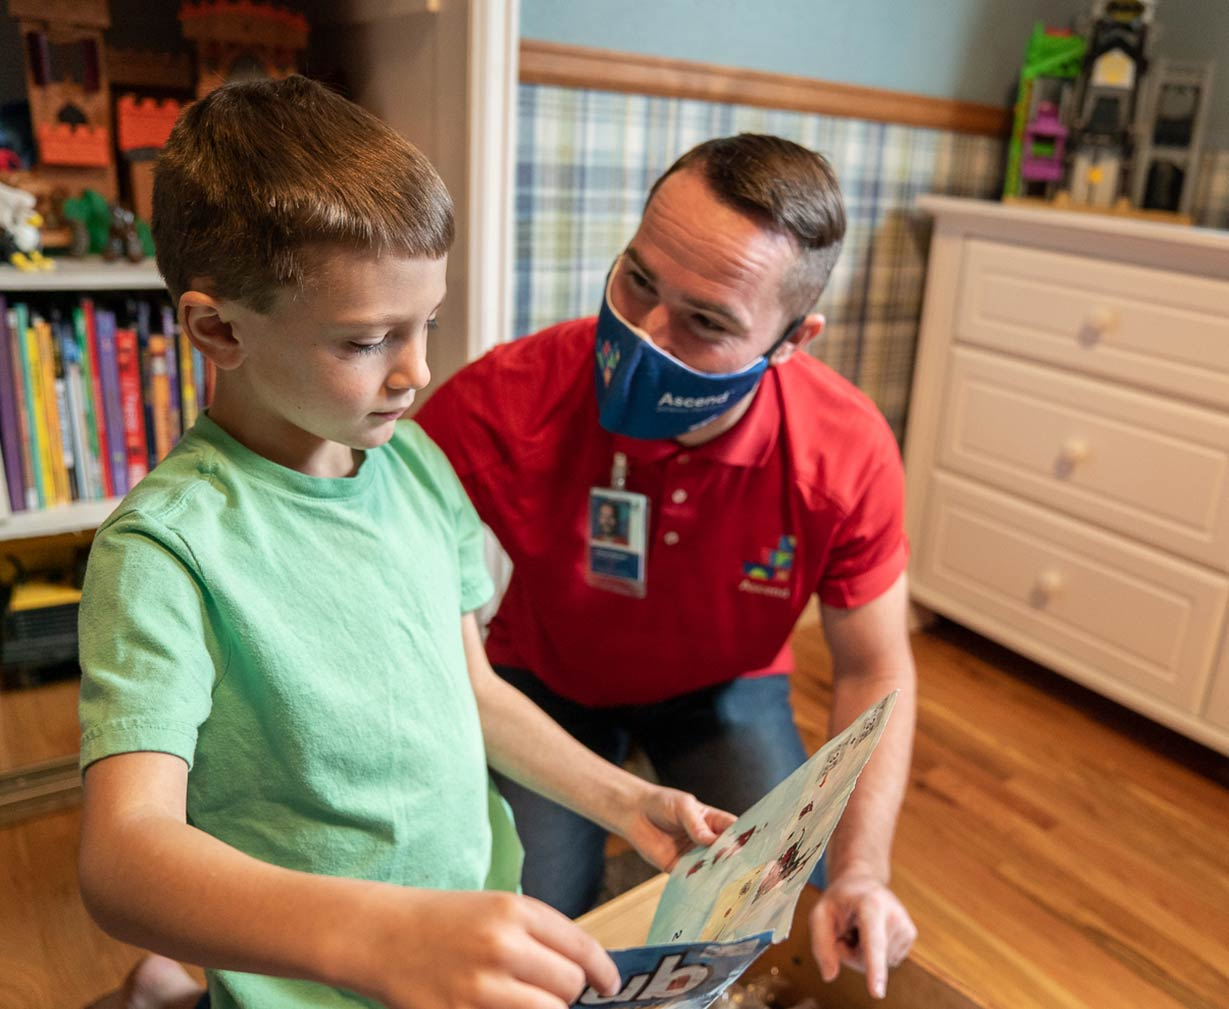 An ABA therapist wearing a red shirt and blue mask working with a small child in a green t-shirt.